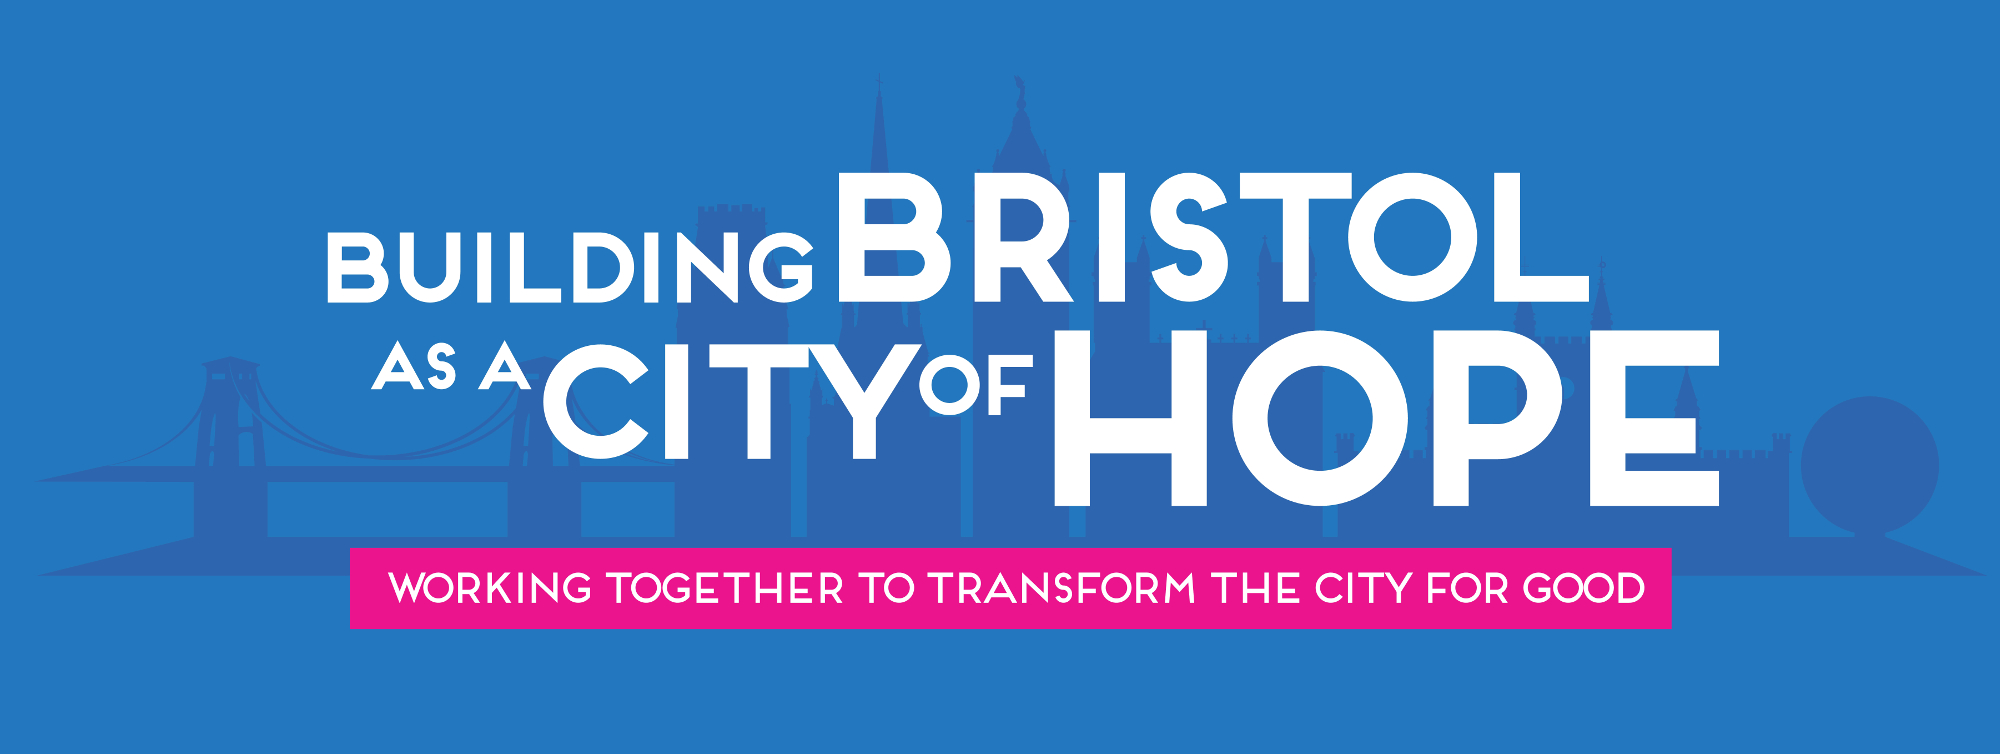 BristolCityofHope8ftx3ft-page-001.jpg